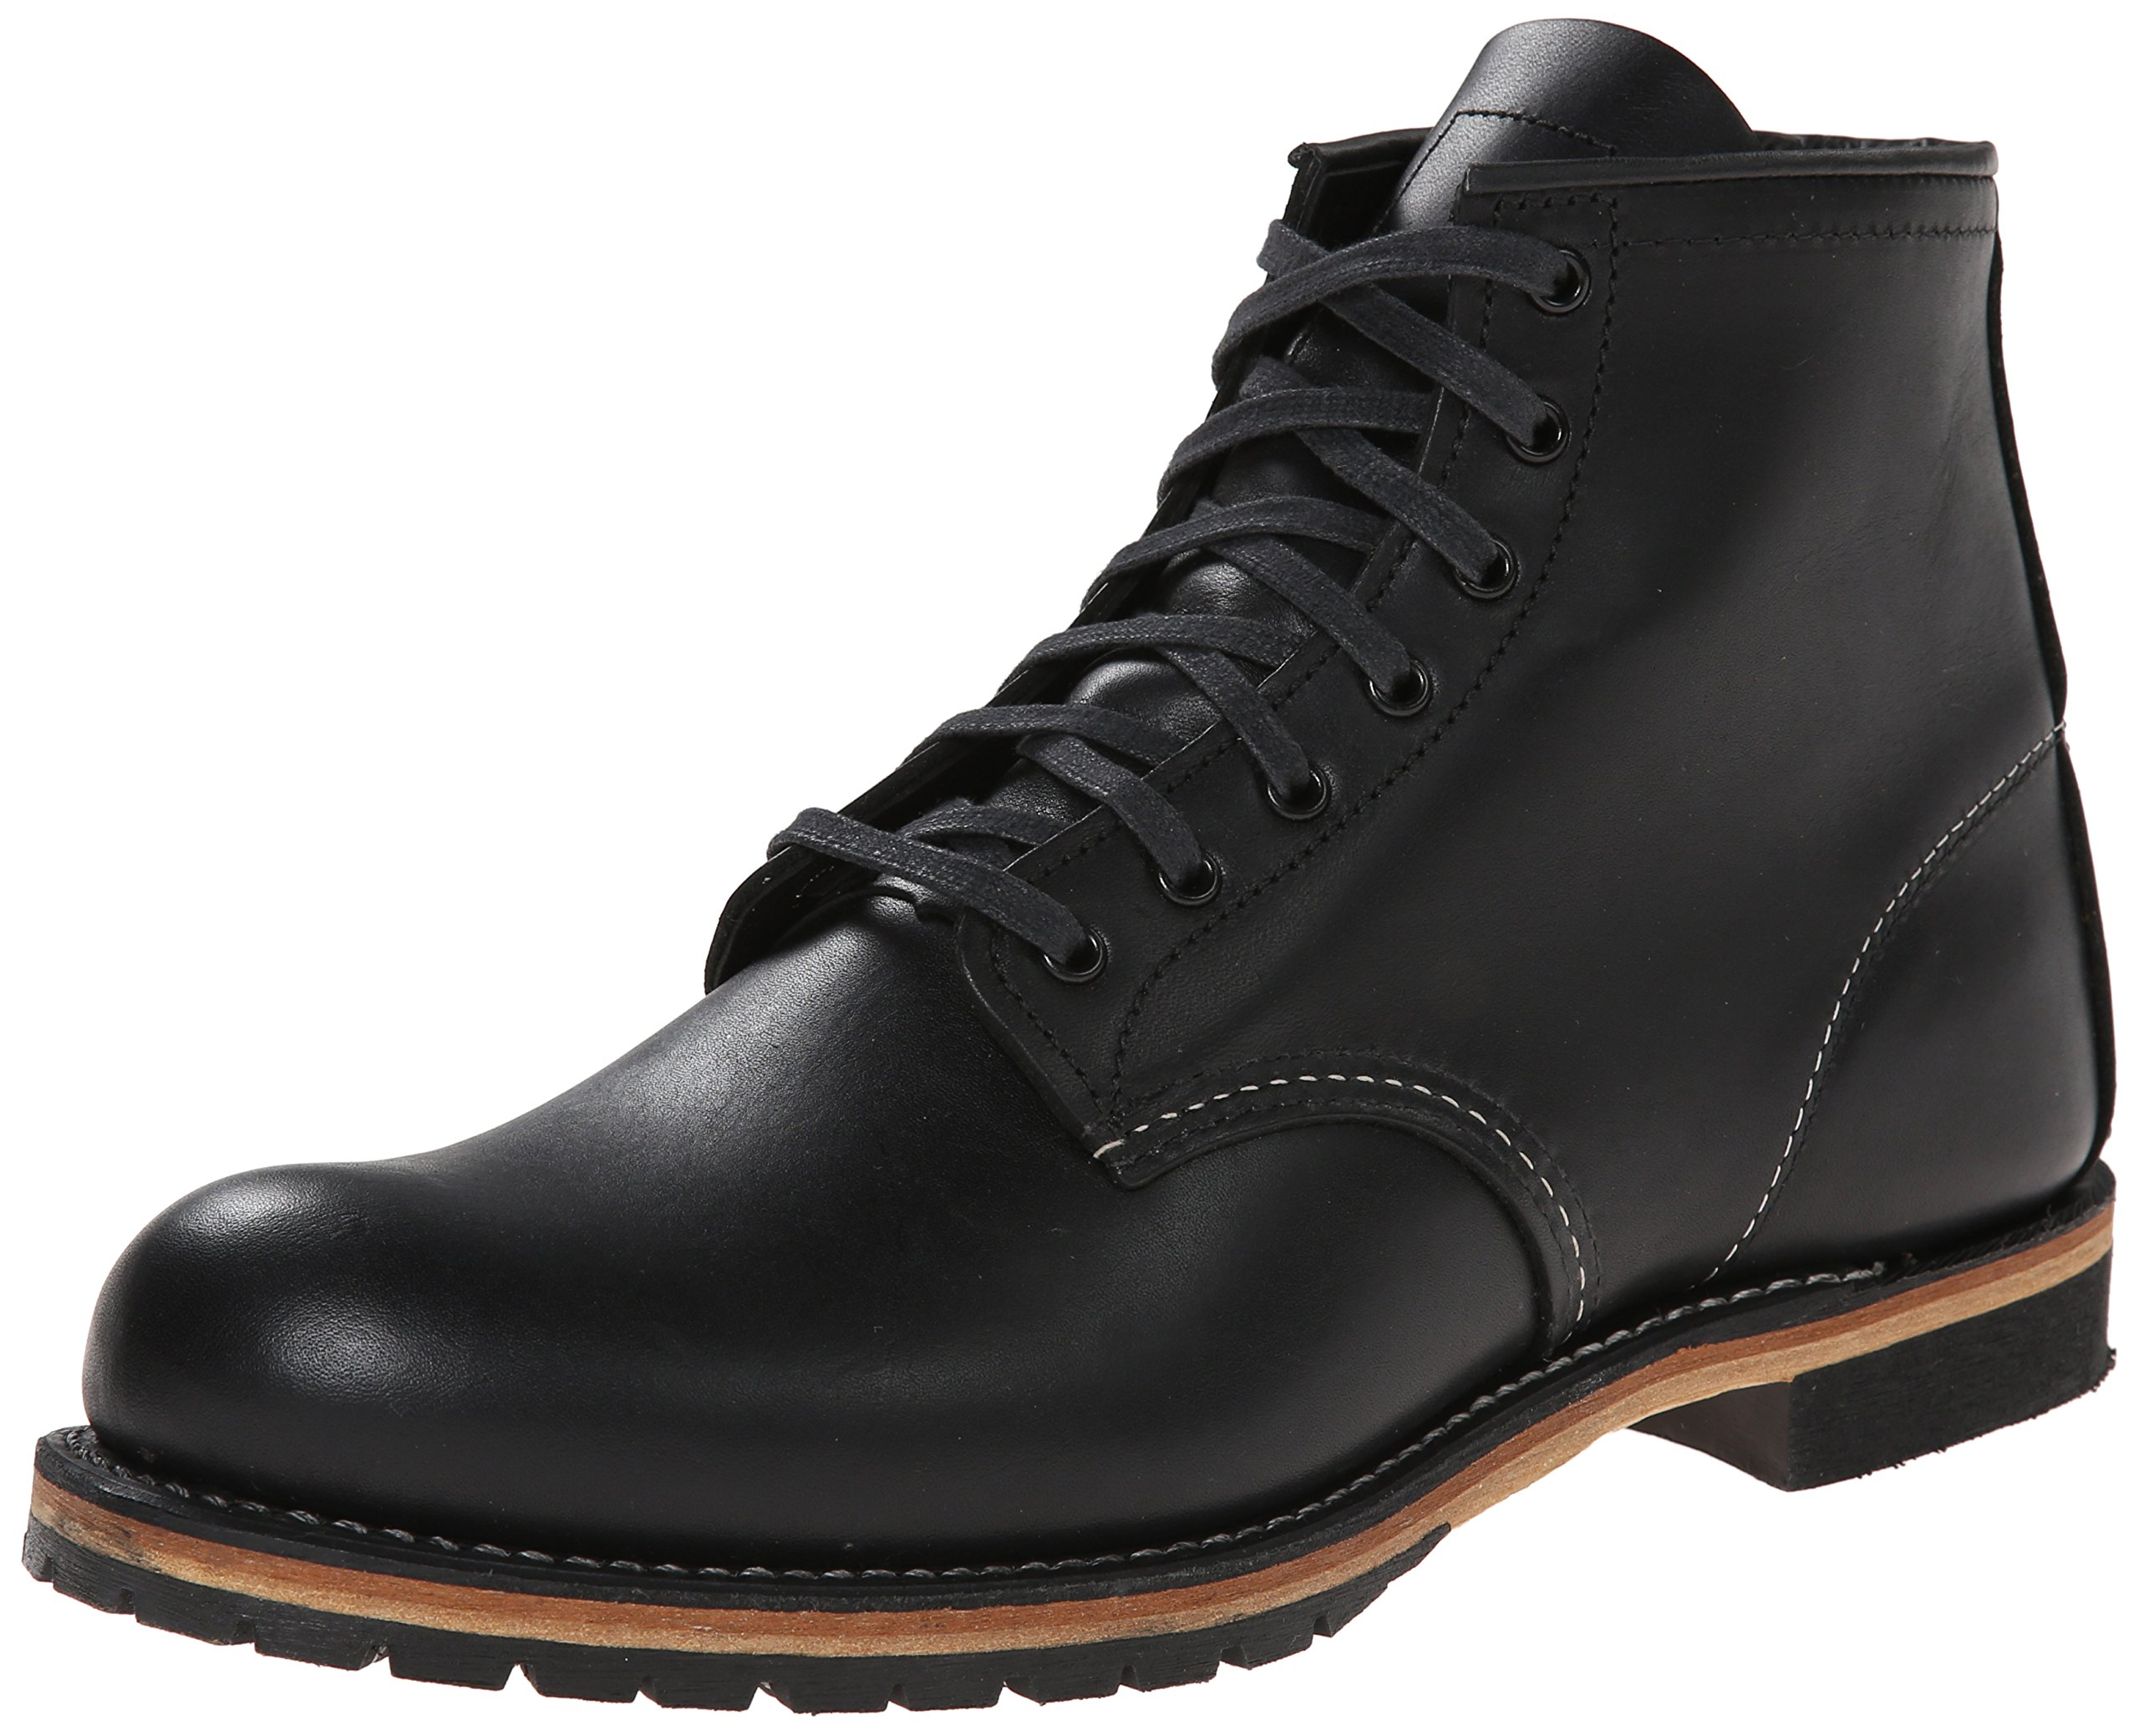 Red Wing Heritage Men's 6-Inch Beckman Round Toe Boot,Black Featherstone,11 D US by Red Wing